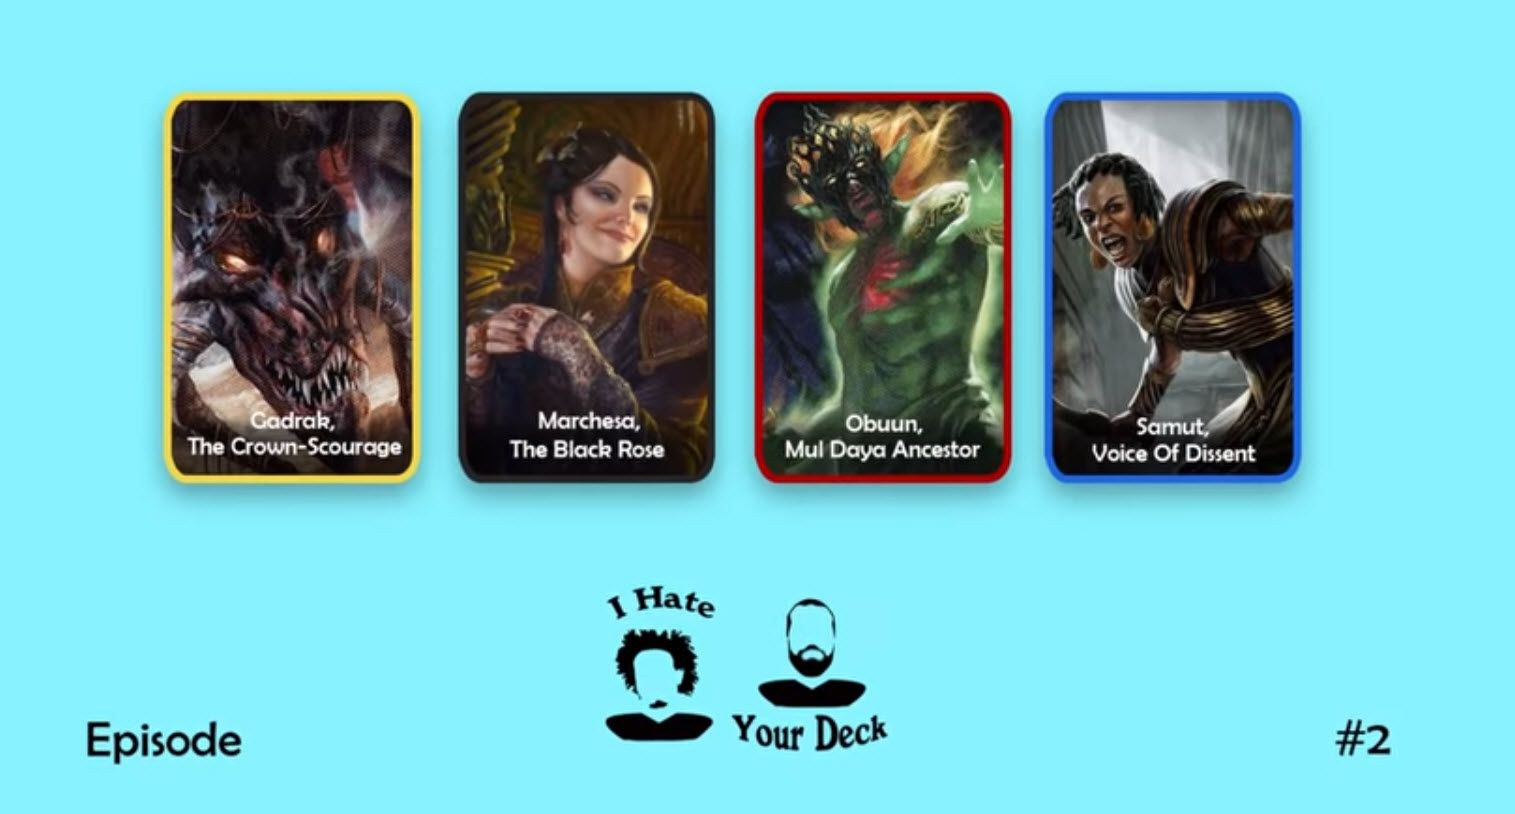 I Hate Your Deck - Episode 2